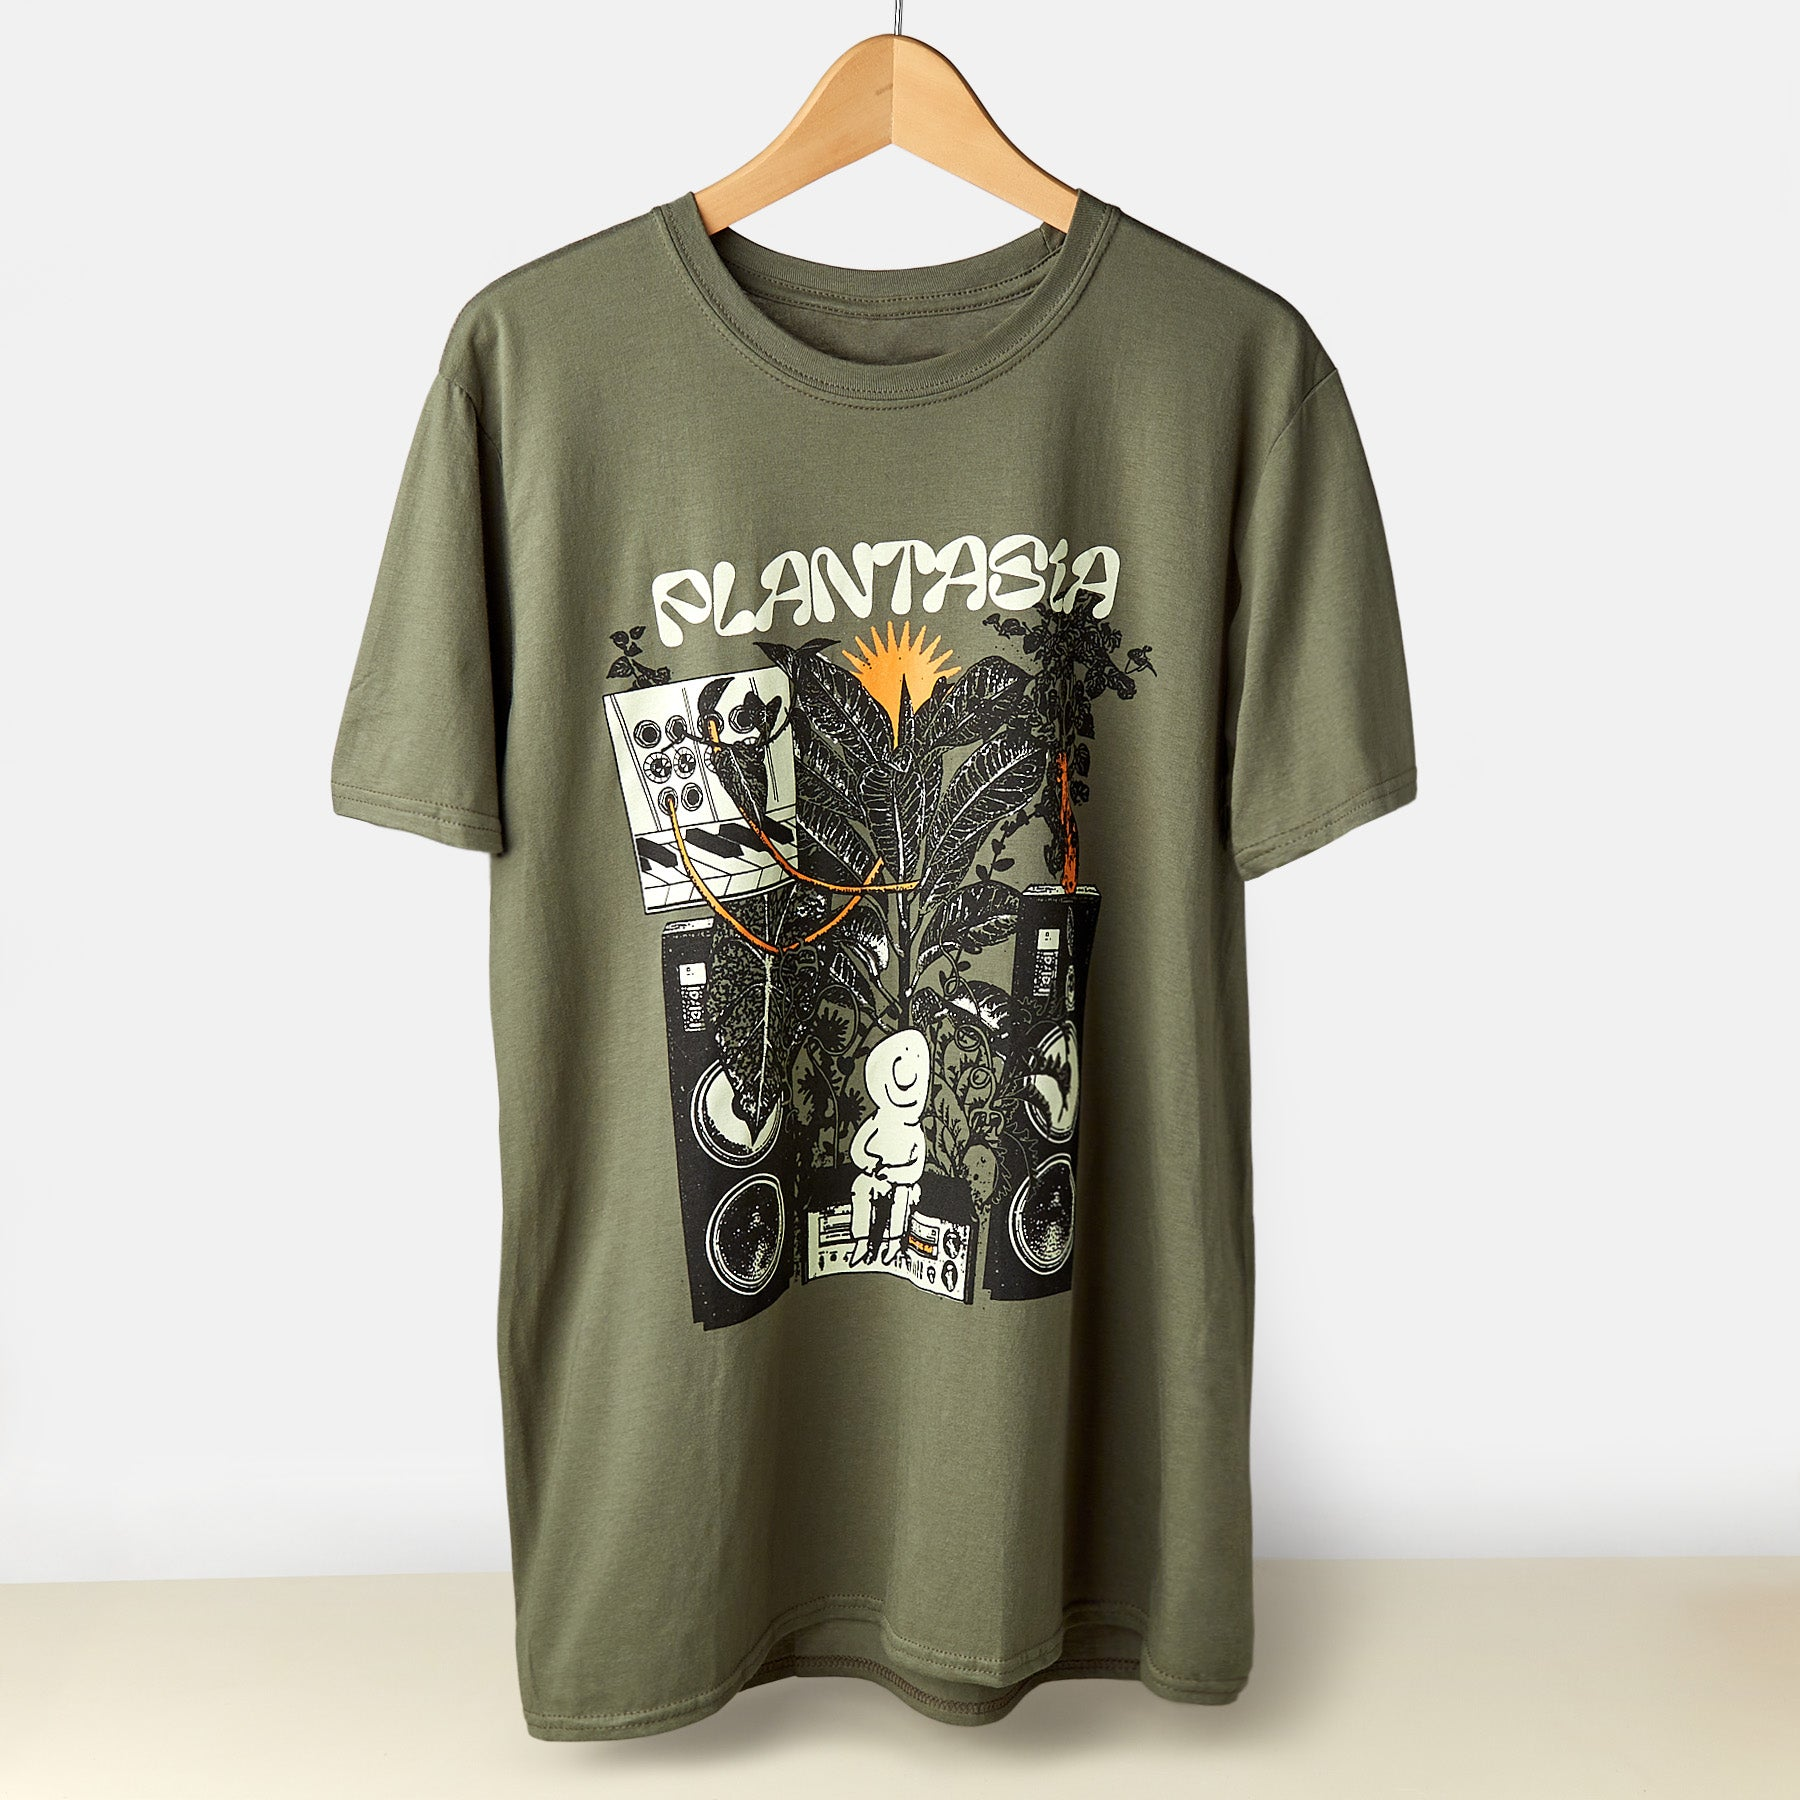 Plantasia 'Bill Connors' Green - T-Shirt